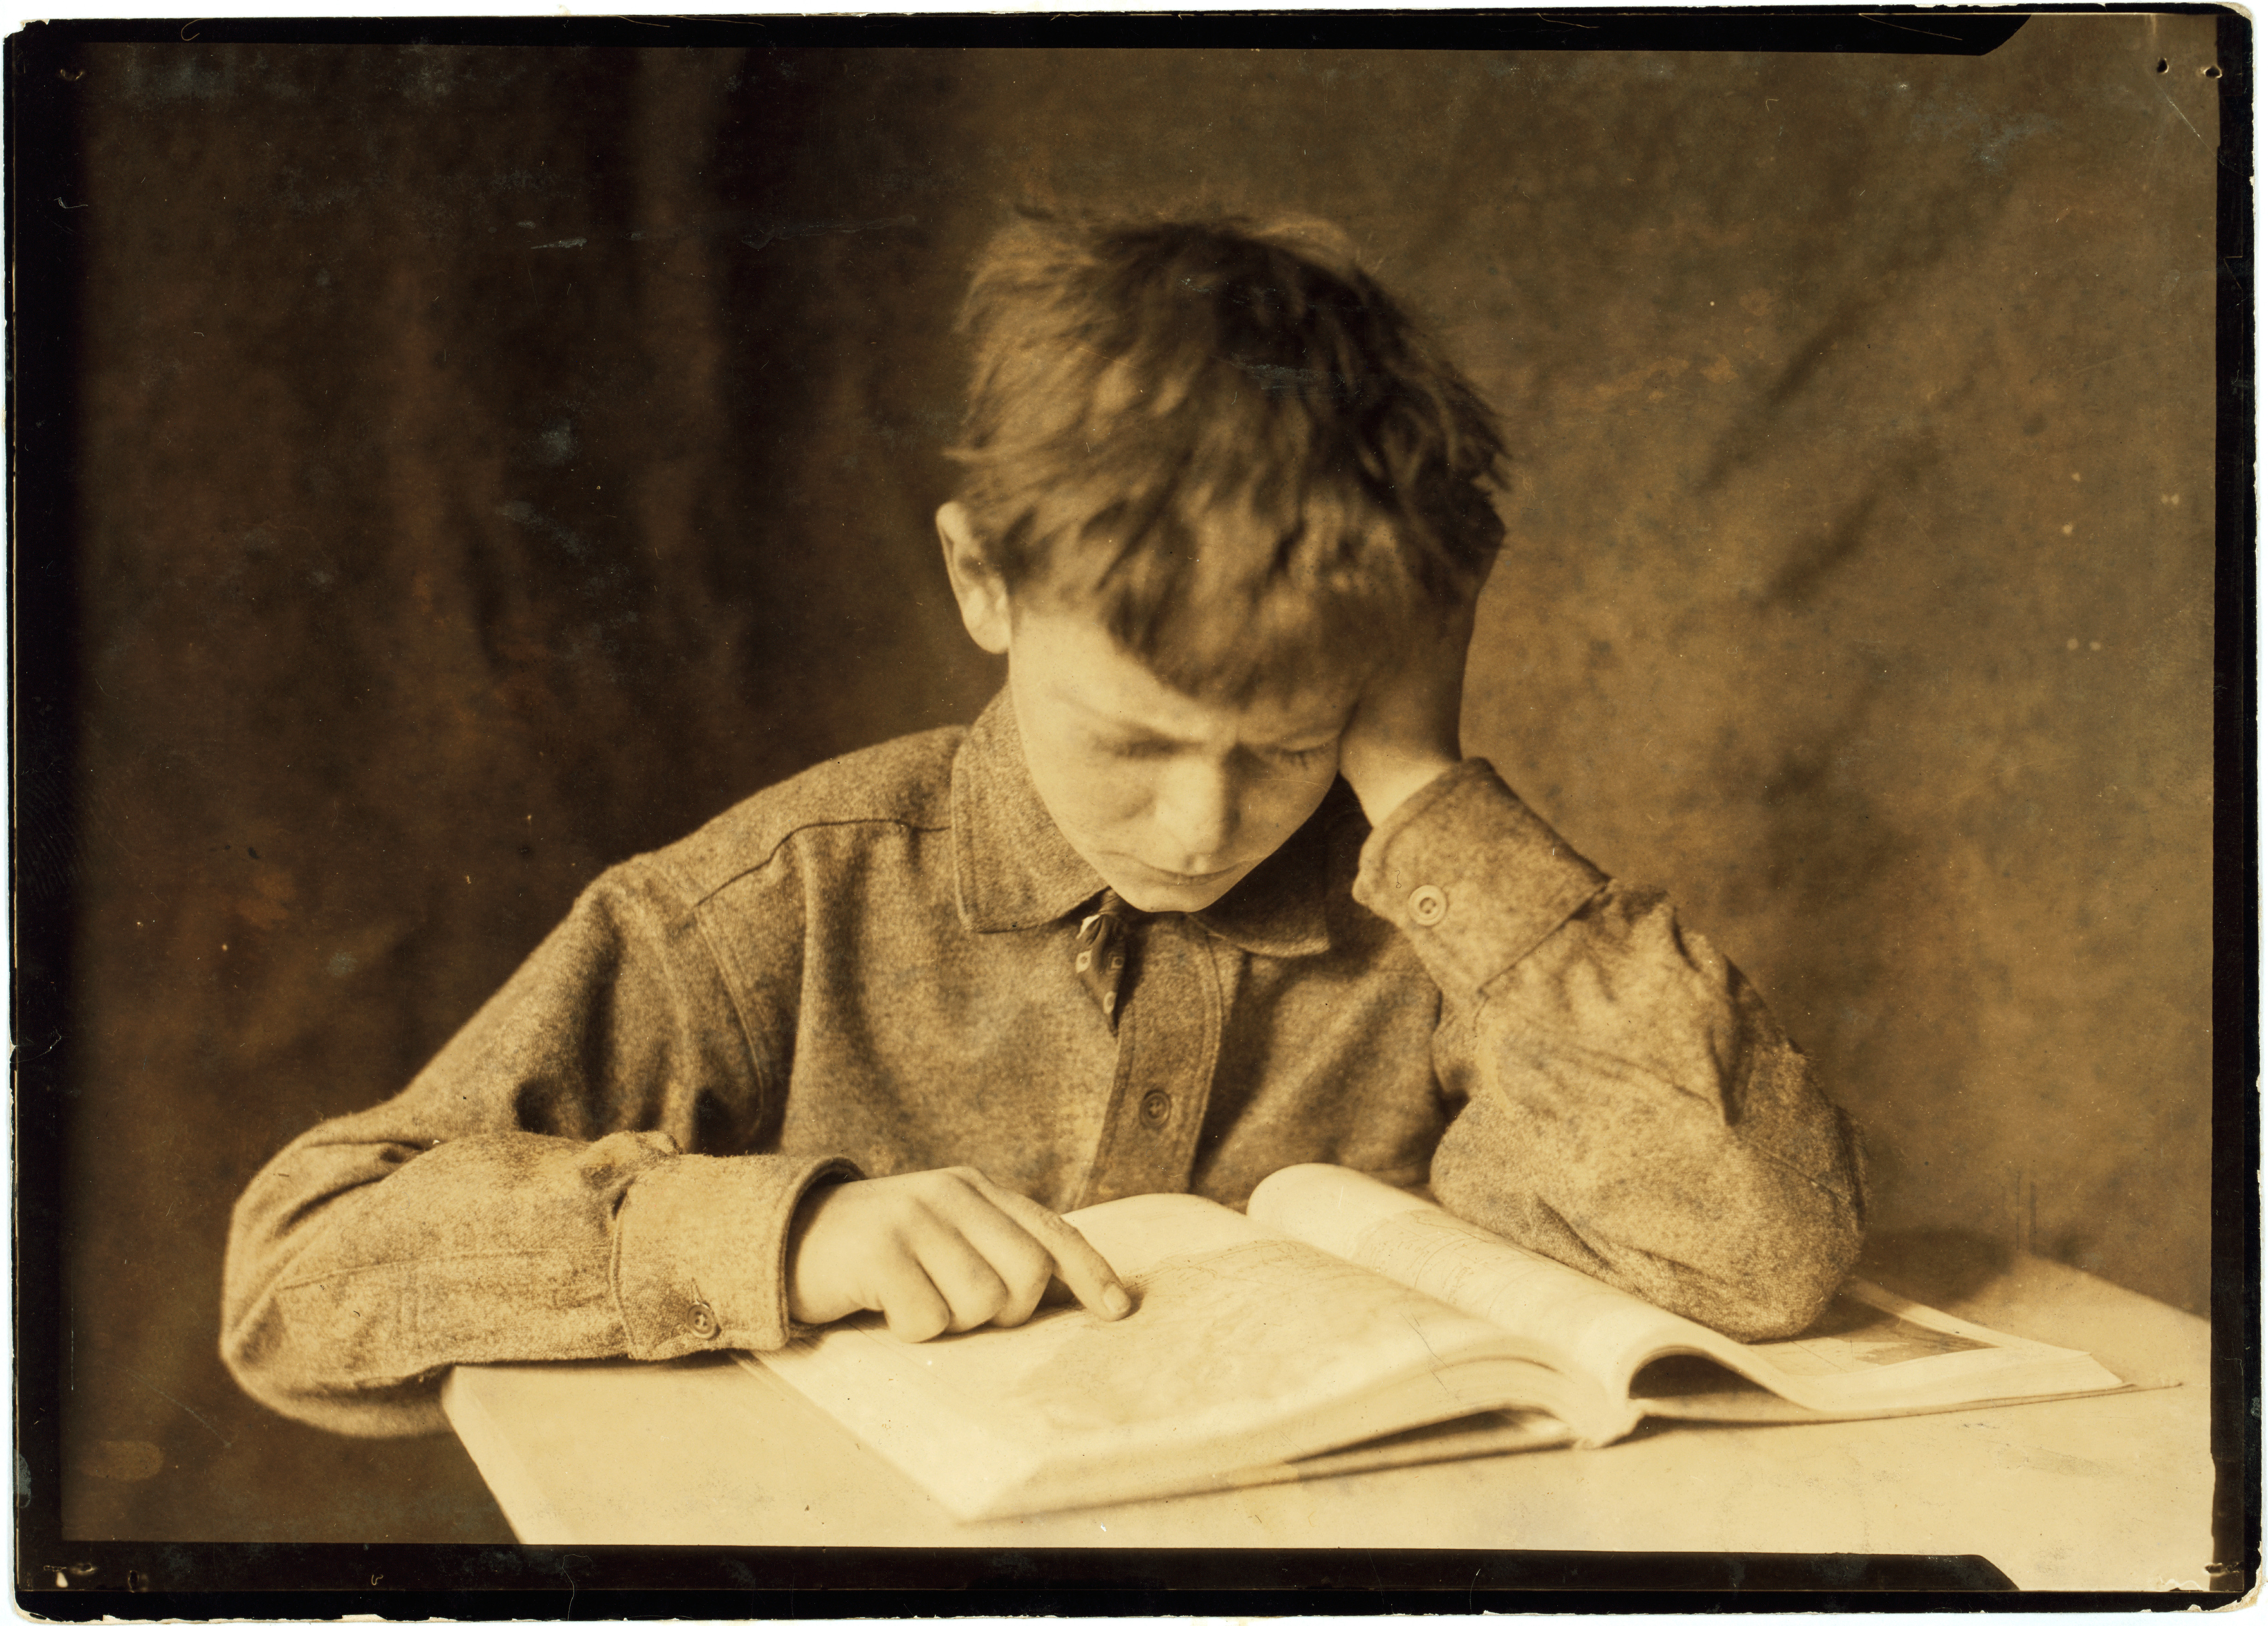 A boy studying